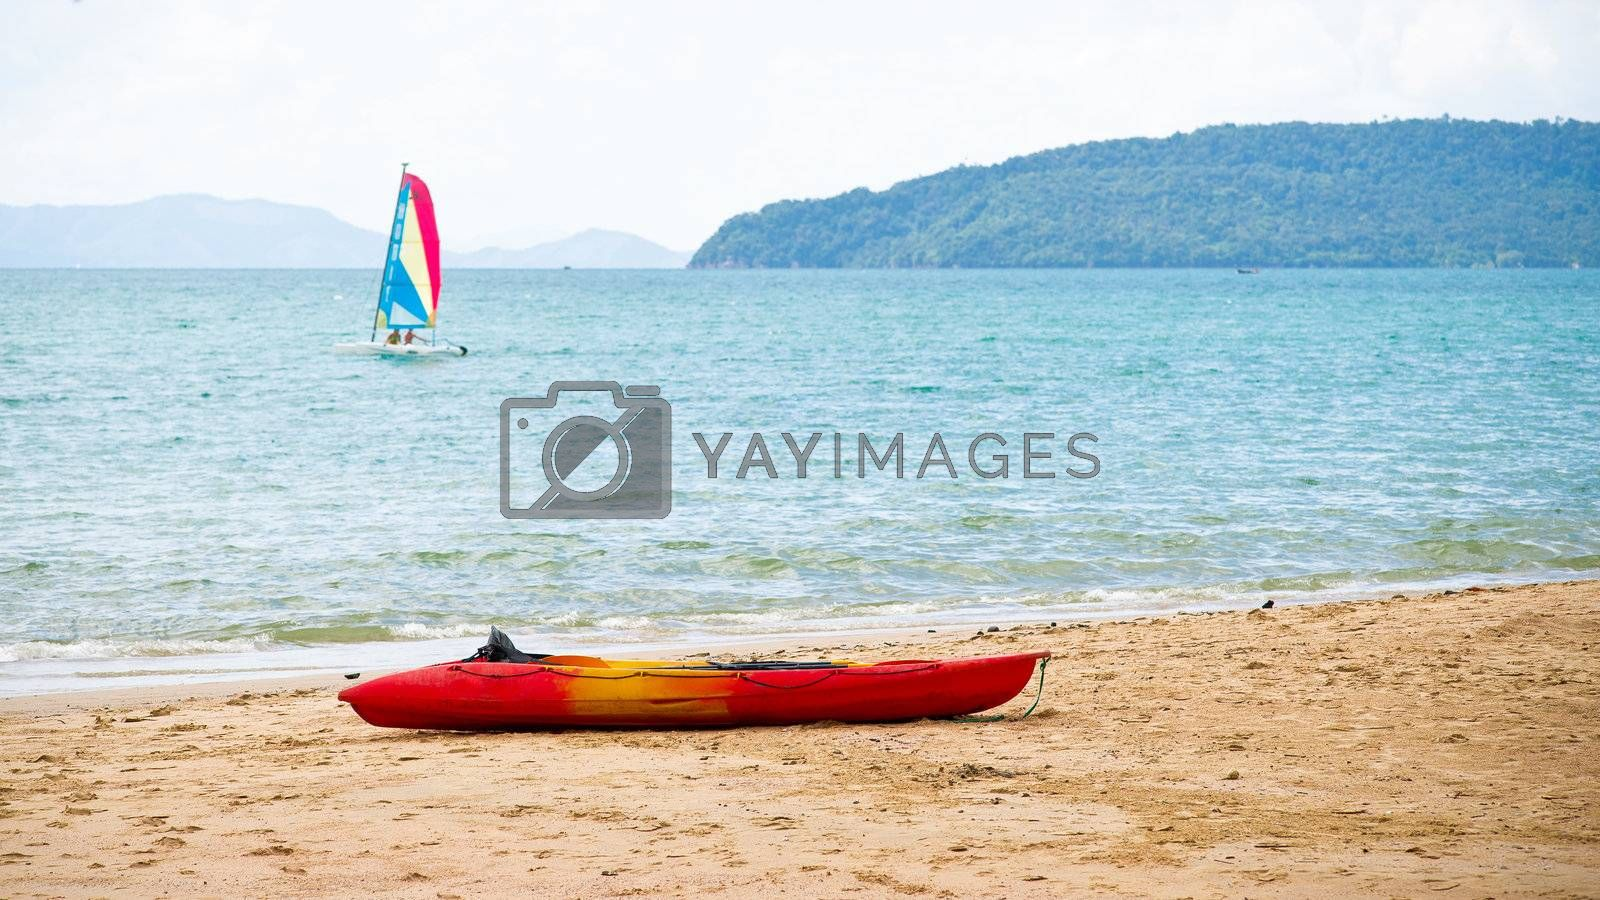 Sailing-boat in the sea and kayak on the beach